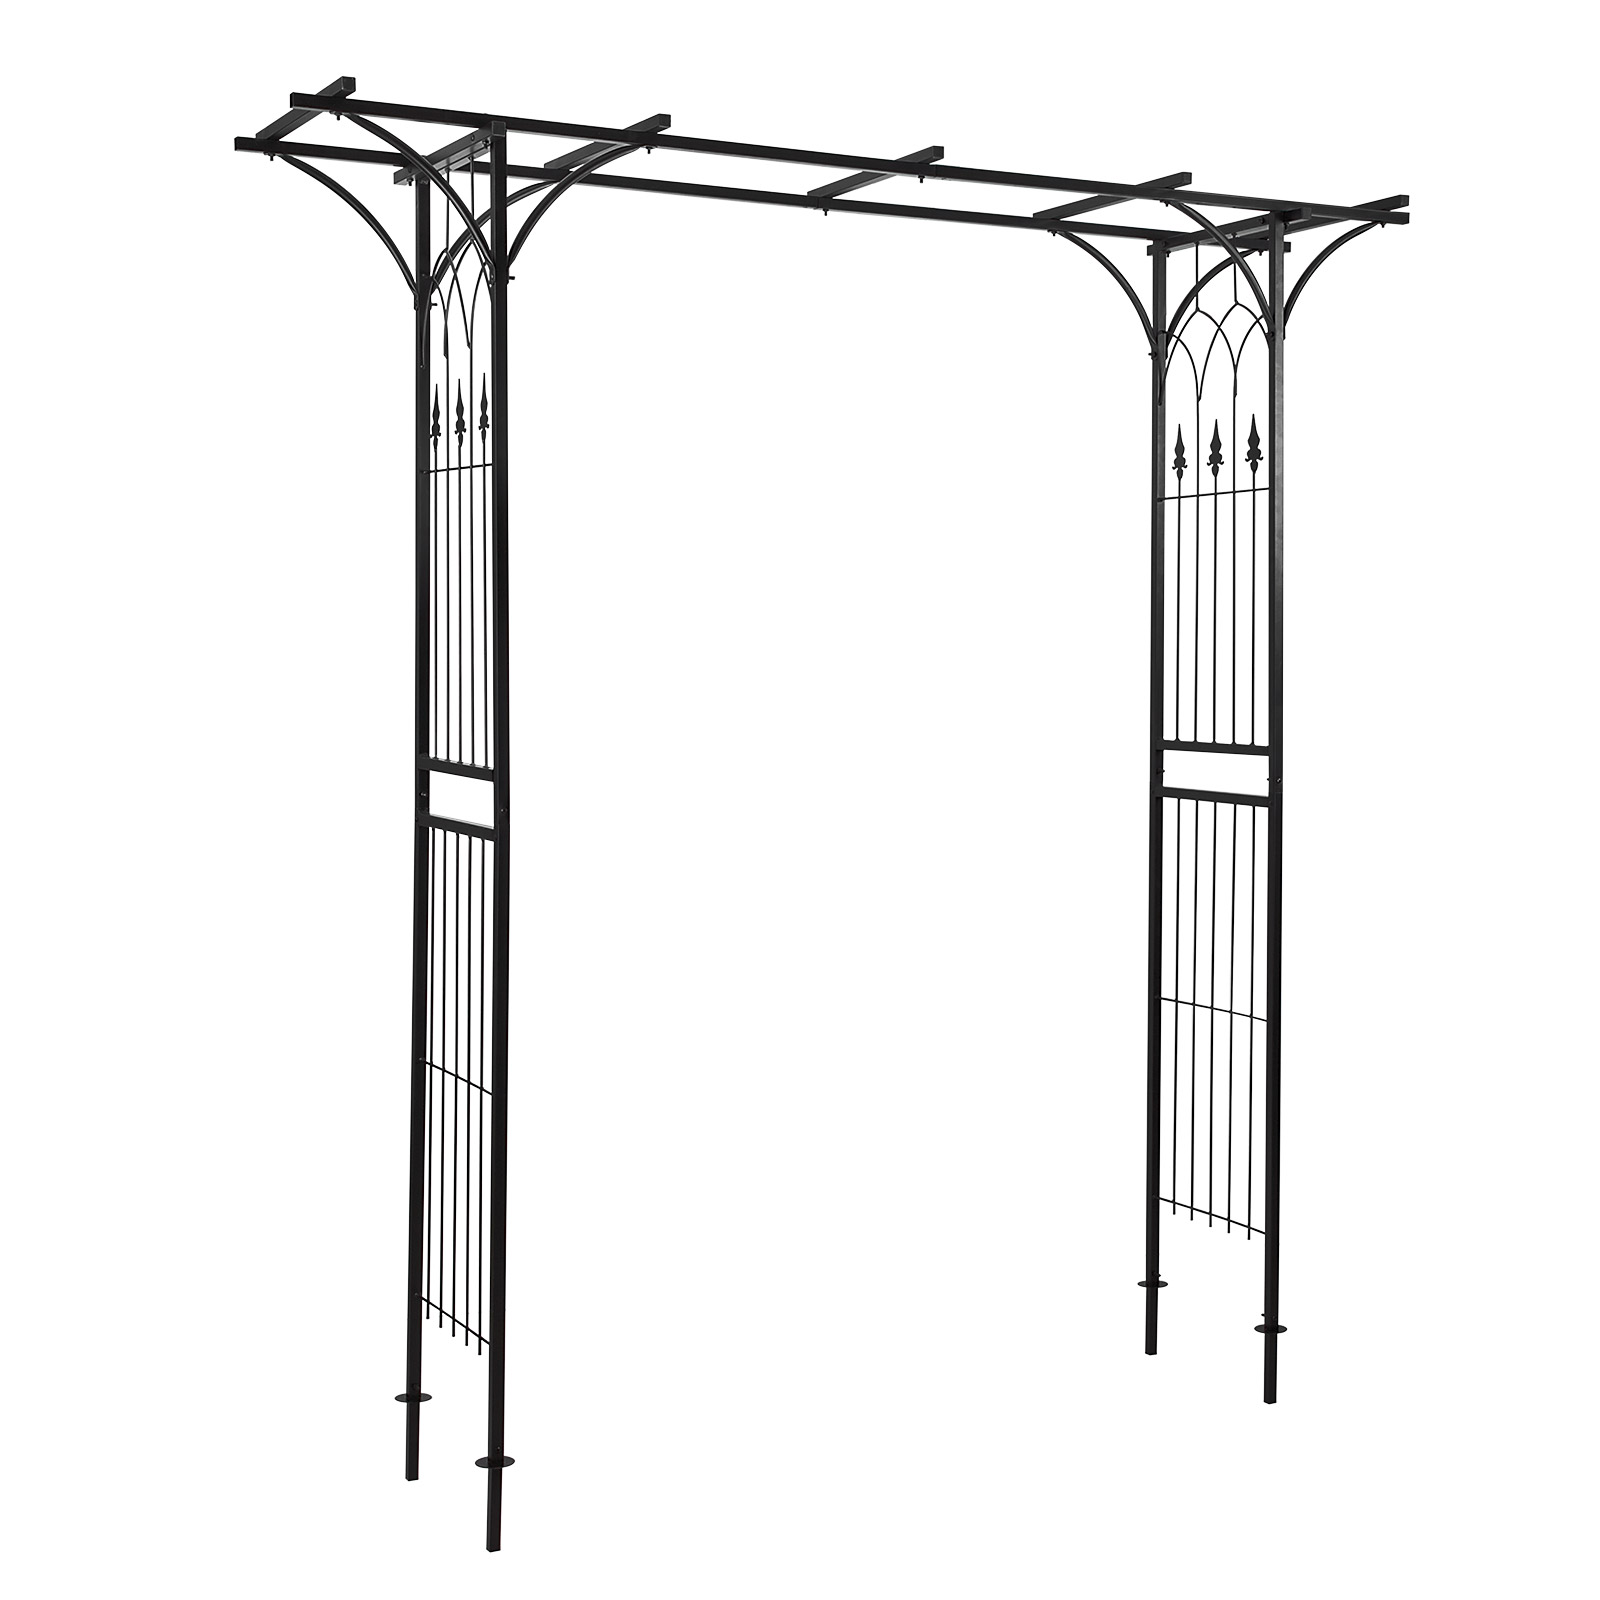 rosenbogen pergola torbogen metall rankhilfe rankgitter mailand 919111 ebay. Black Bedroom Furniture Sets. Home Design Ideas